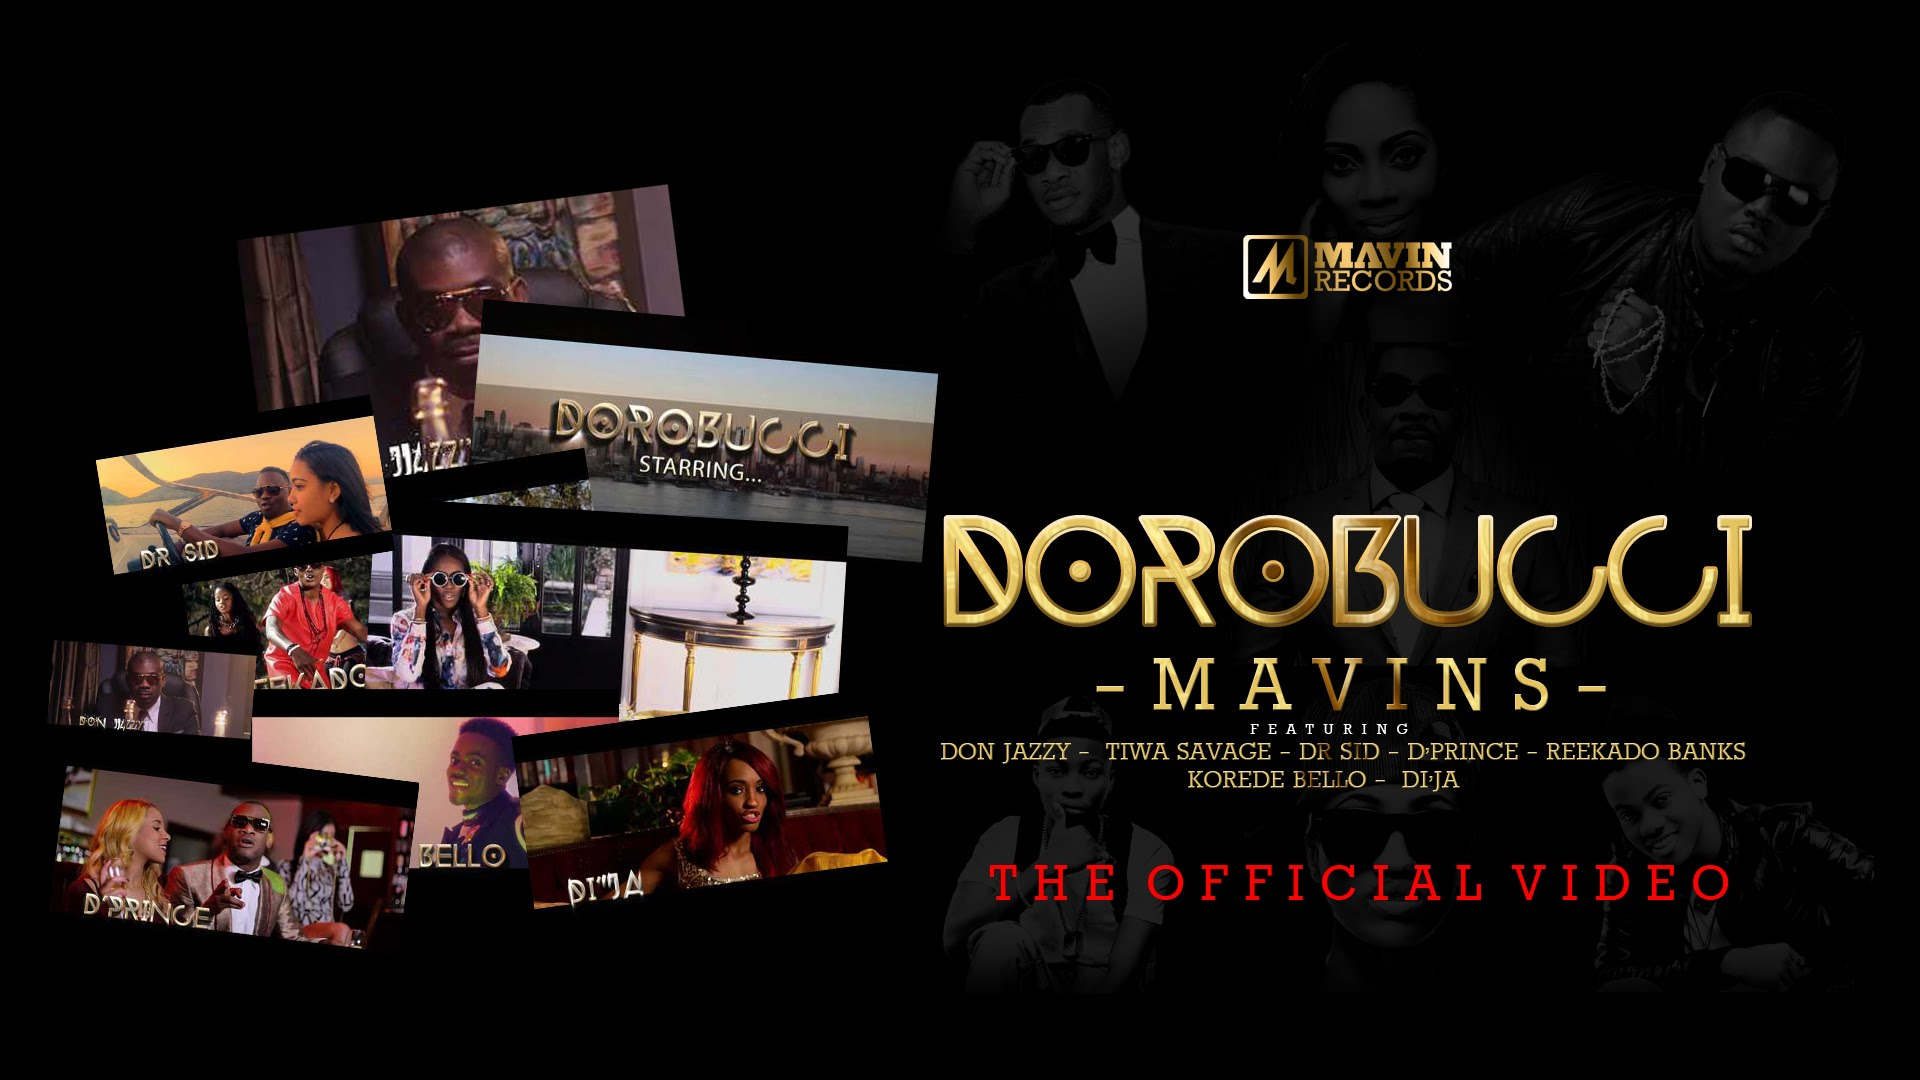 downloadofficial-video-mavins-dorobucci-ft-don-jazzy-tiwa-savage-dr-sid-dprince-reekado-banks-korede-bello-dija